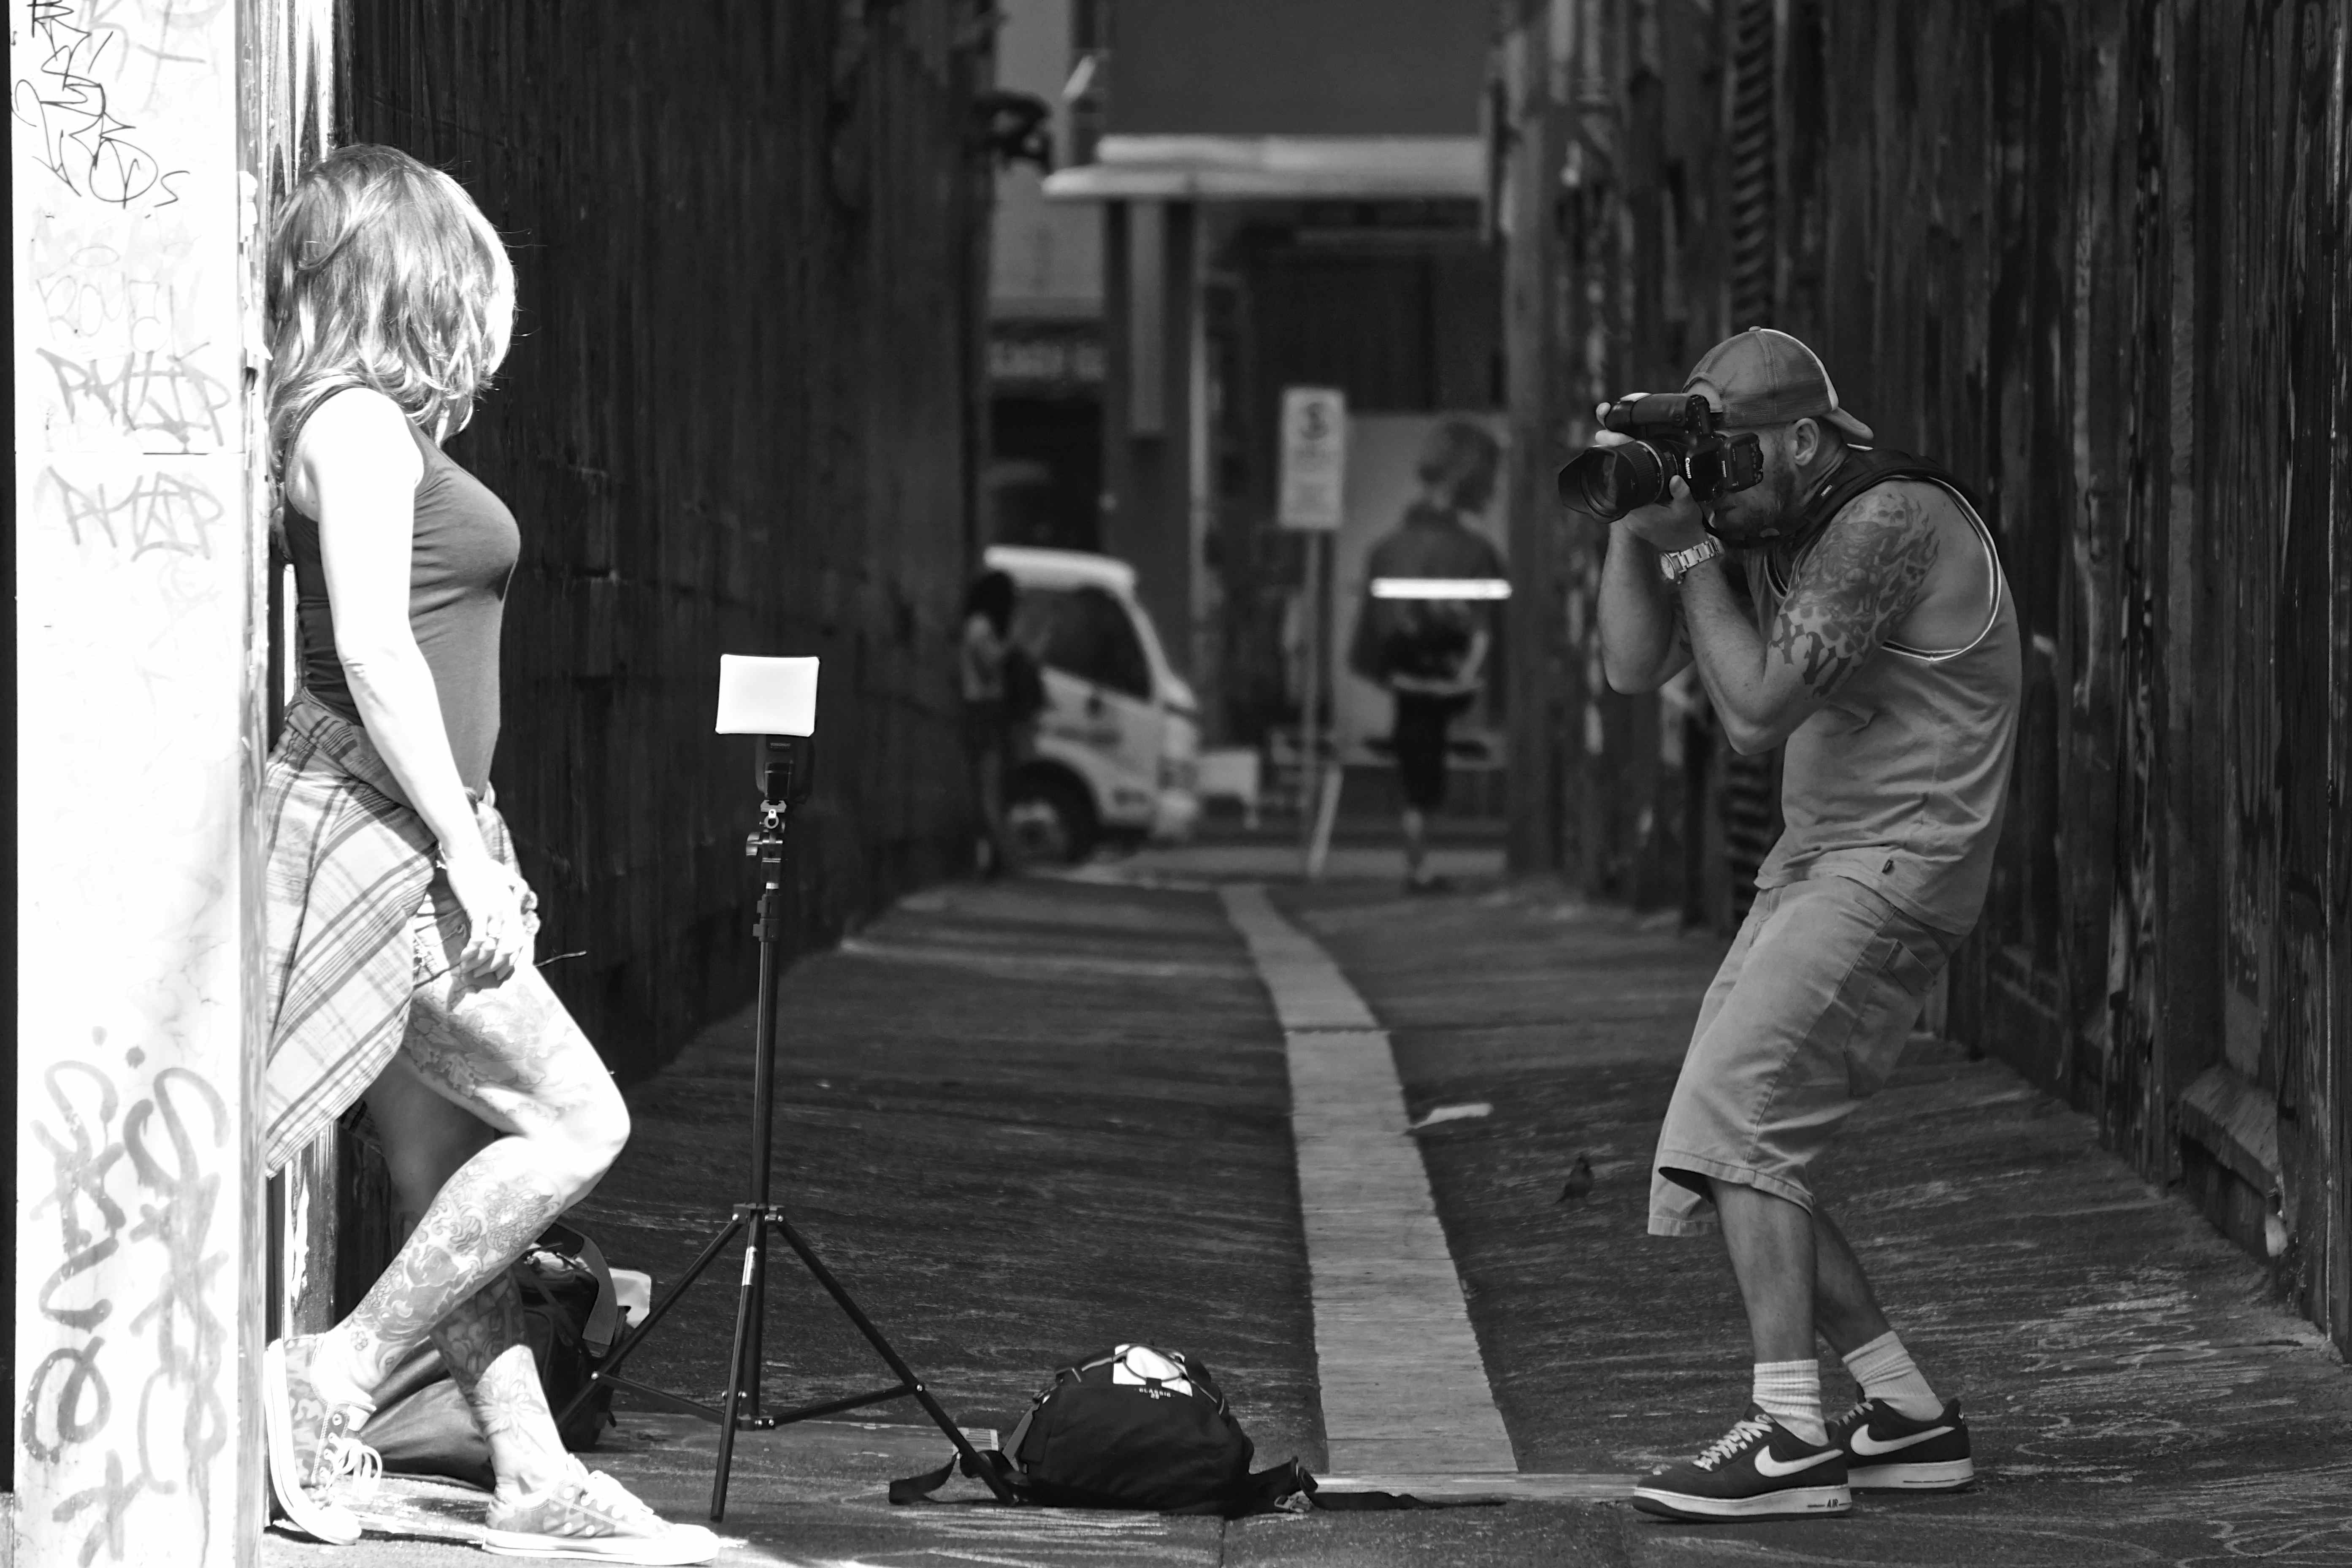 Dsc00037 categories uncategorized•tags black and white city lane mirrowless camera photography